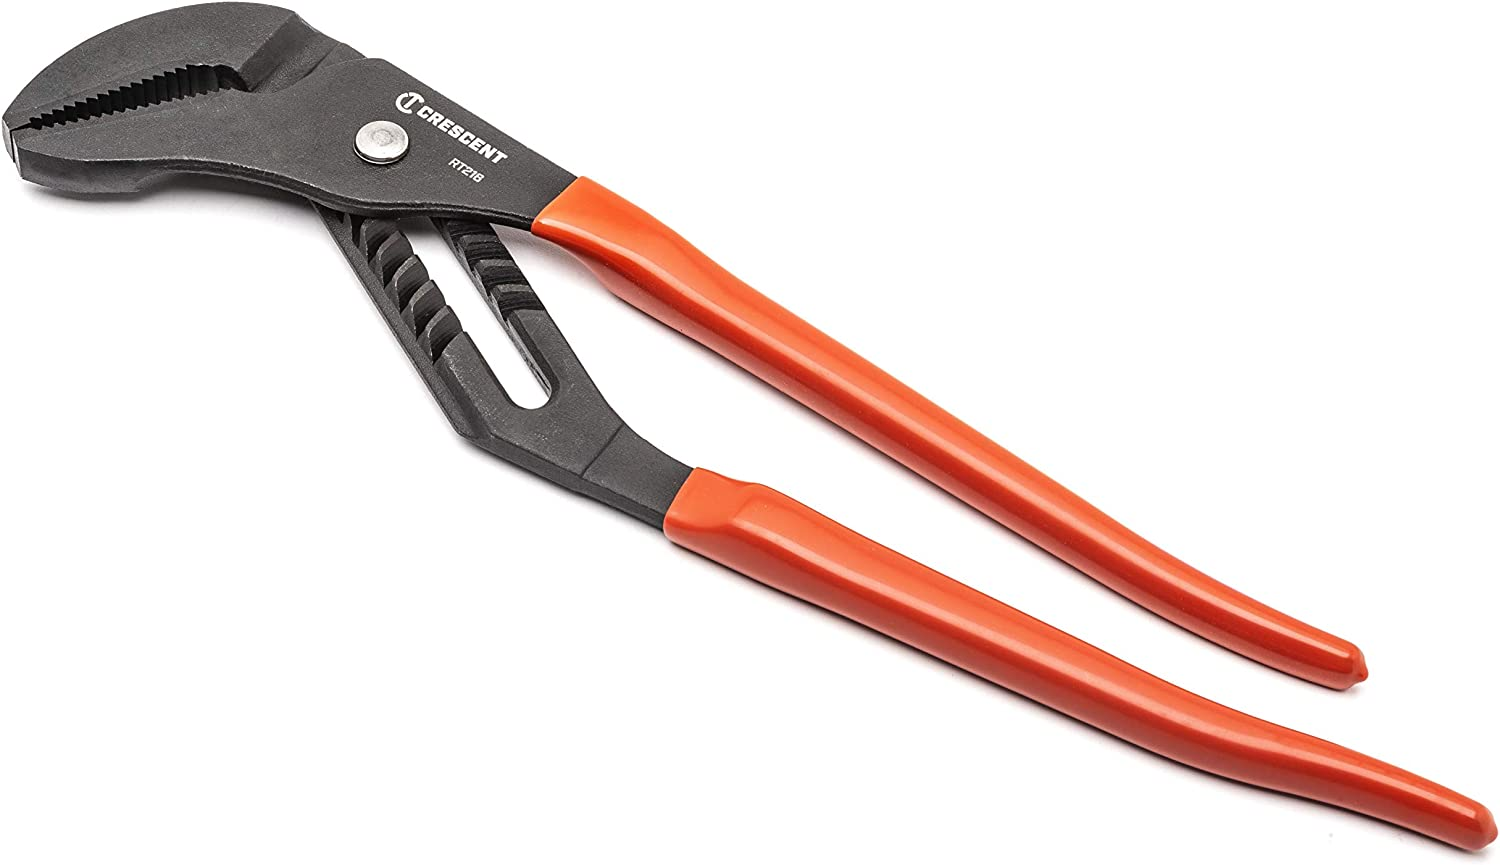 16 Tongue /& Groove Pliers-3Pack